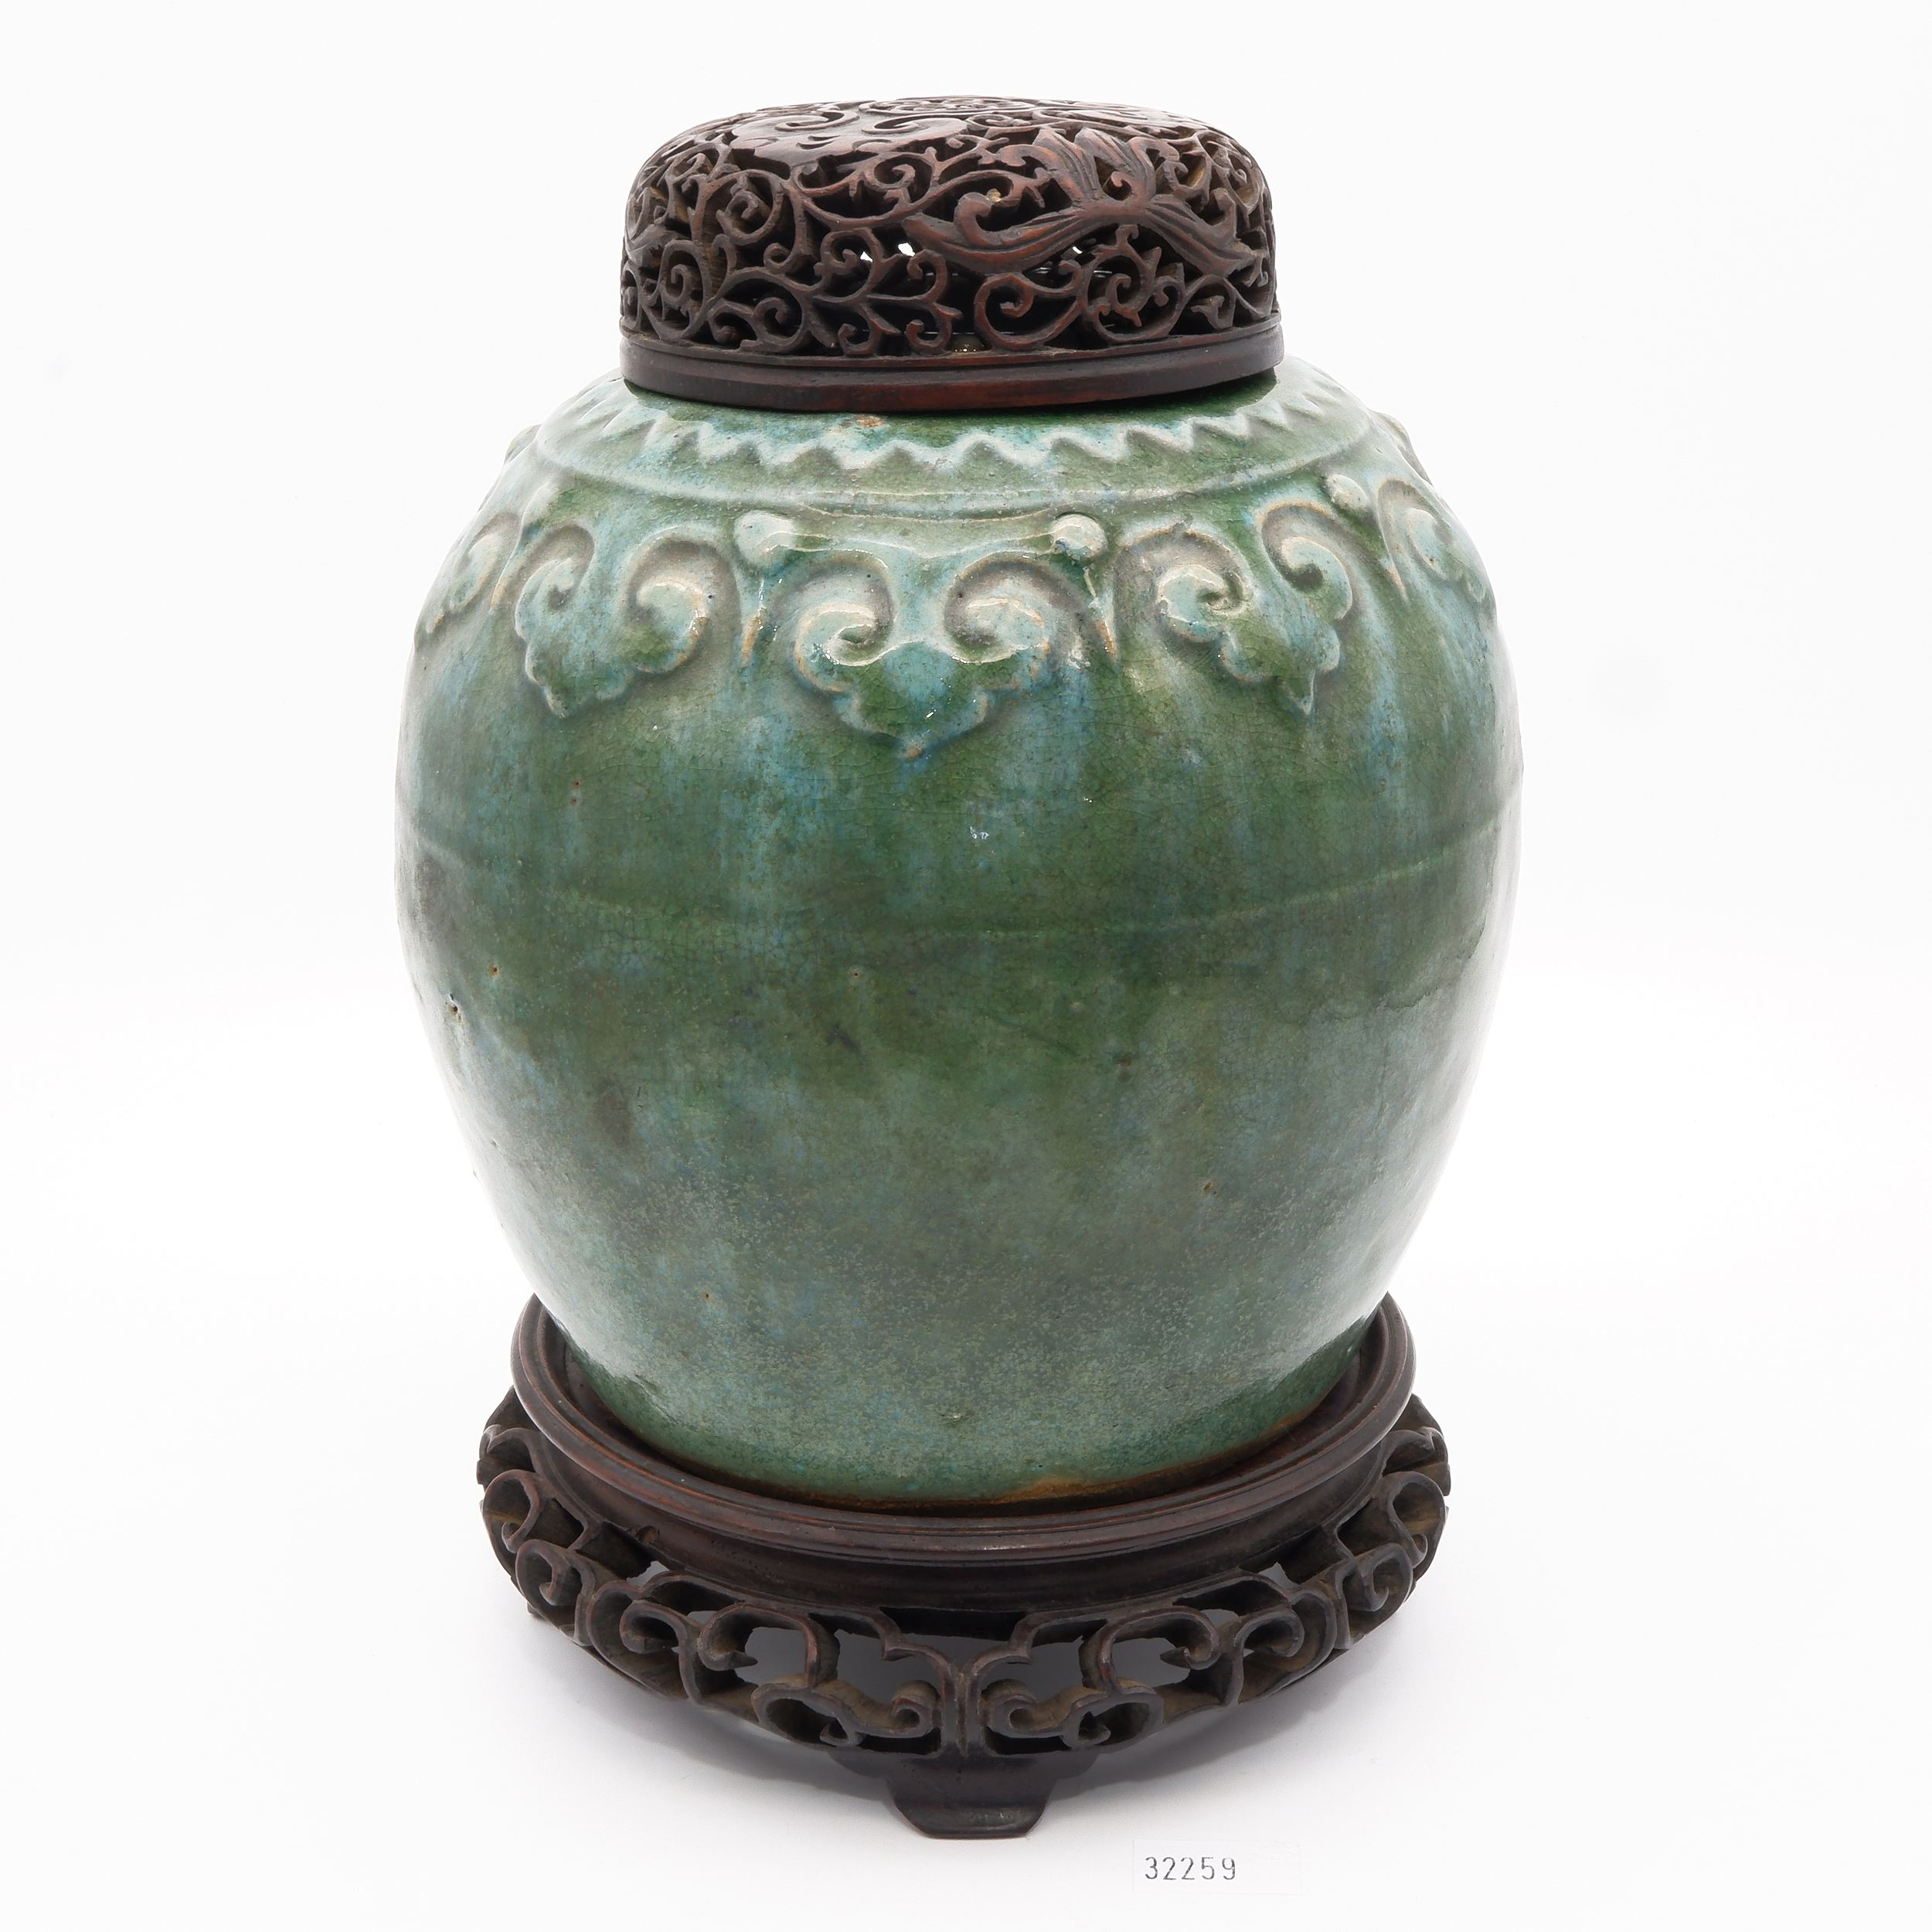 'Antique Chinese Green Glazed Stoneware Jar with a Moulded Ruyi Border, Pierced and Carved Hardwood Stand and Cover'